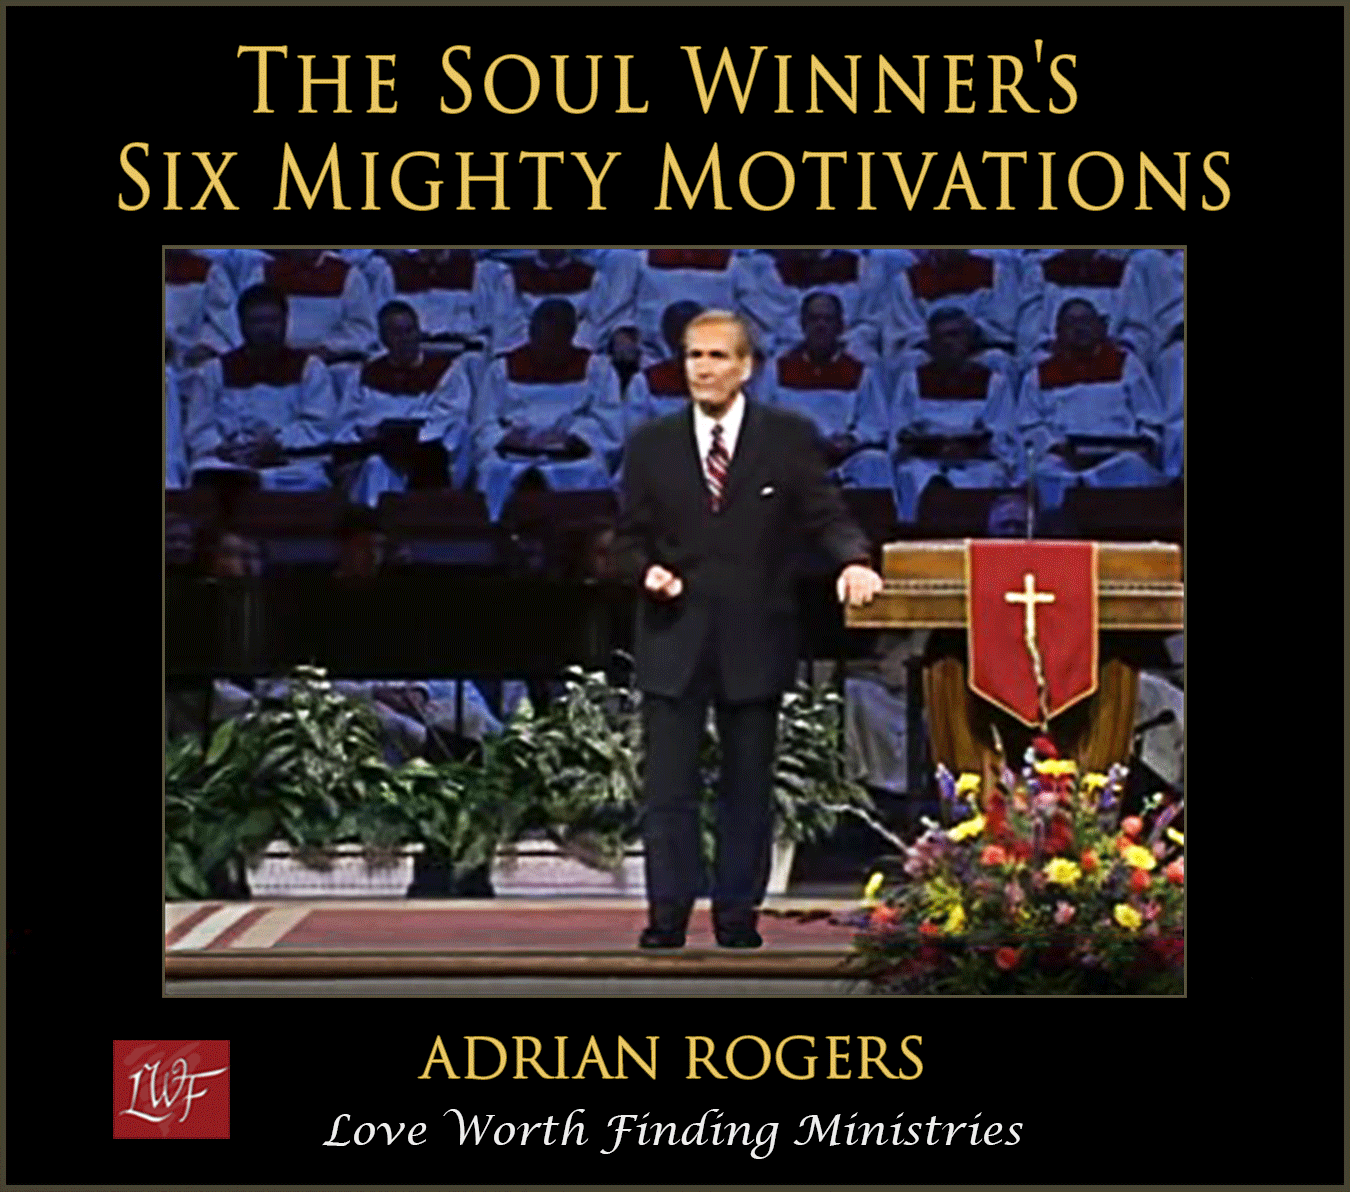 Adrian-Rogers-Soul-Winners-Motivation